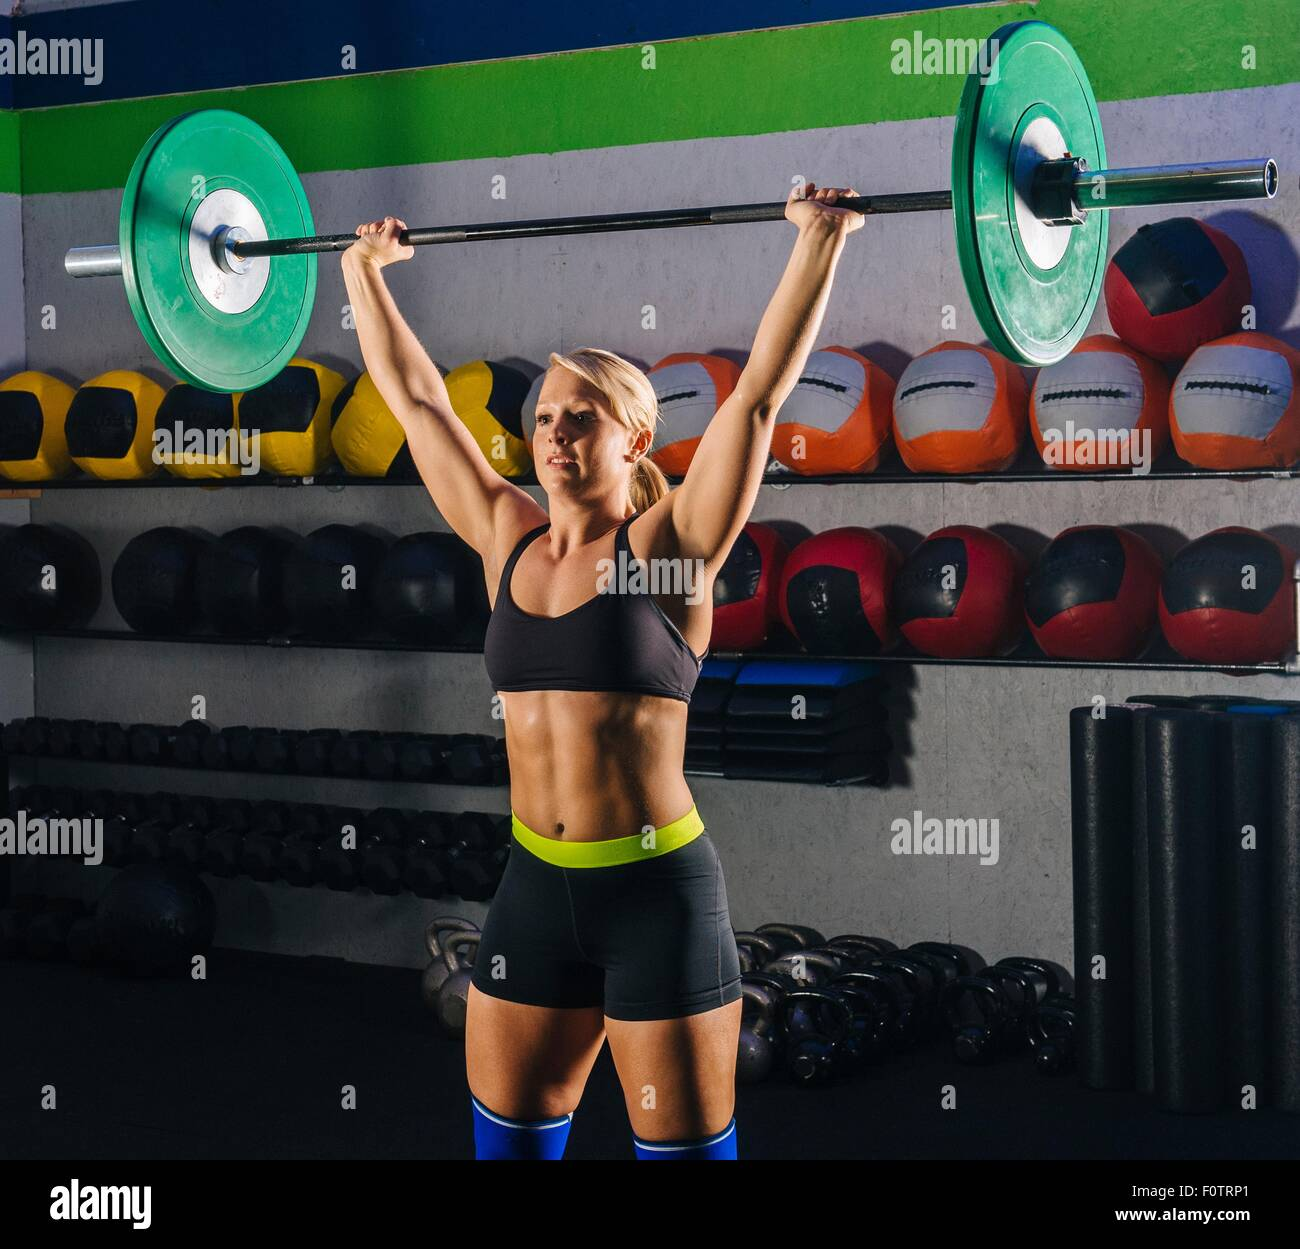 Young woman weight lifting with barbell in gym - Stock Image